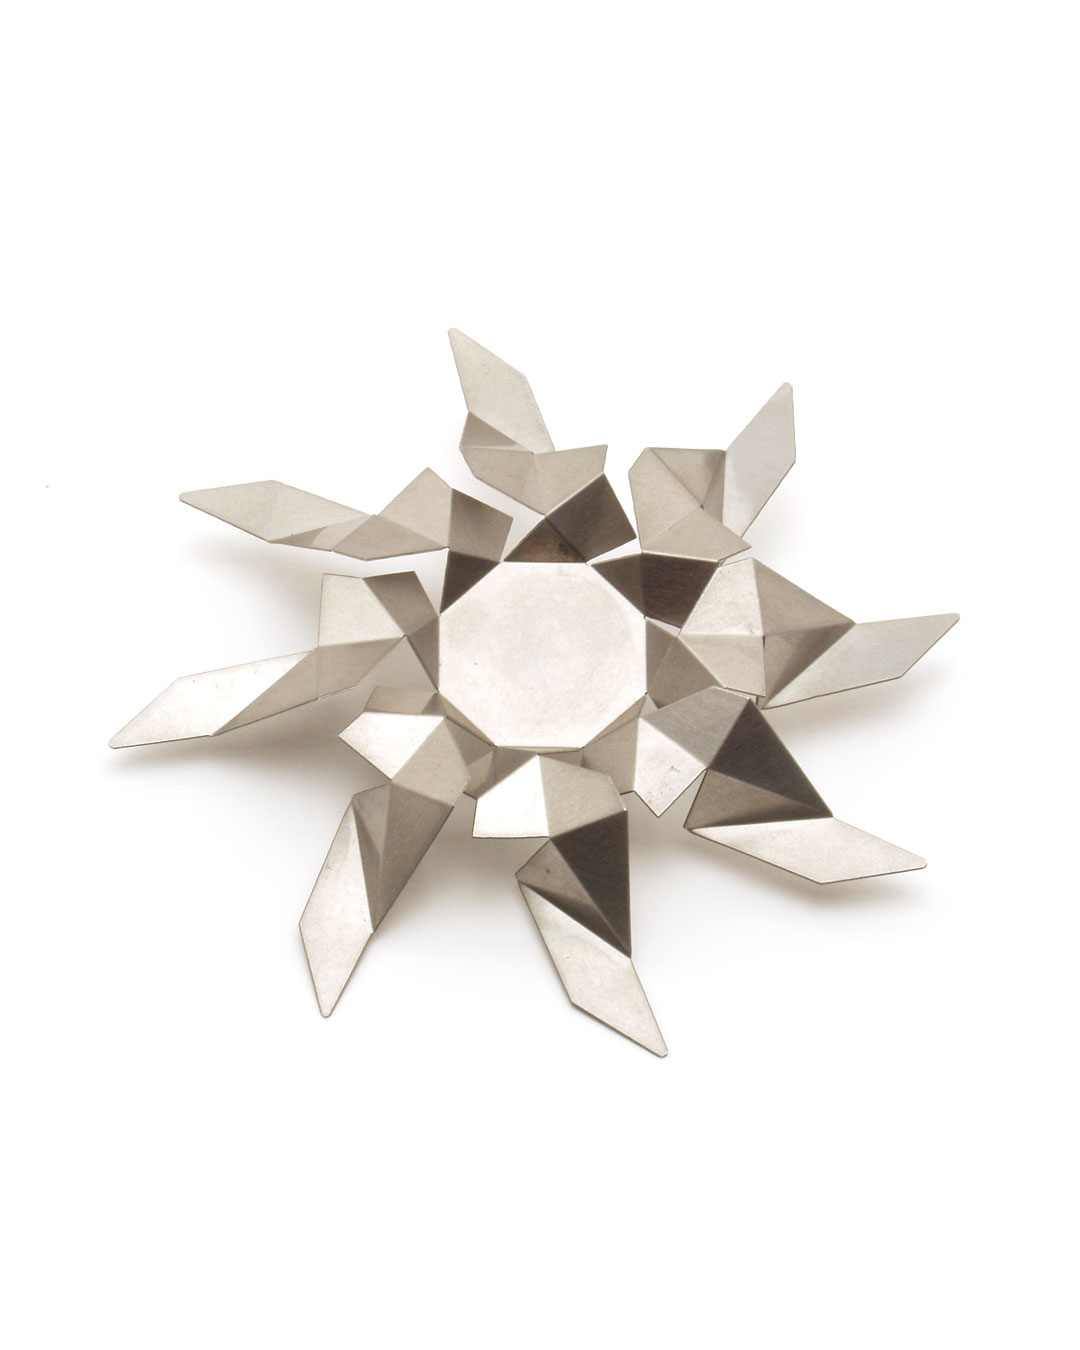 Herman Hermsen, Briljant (Brilliant), 1990, brooch; etched stainless steel, 109 x 17 mm, €515